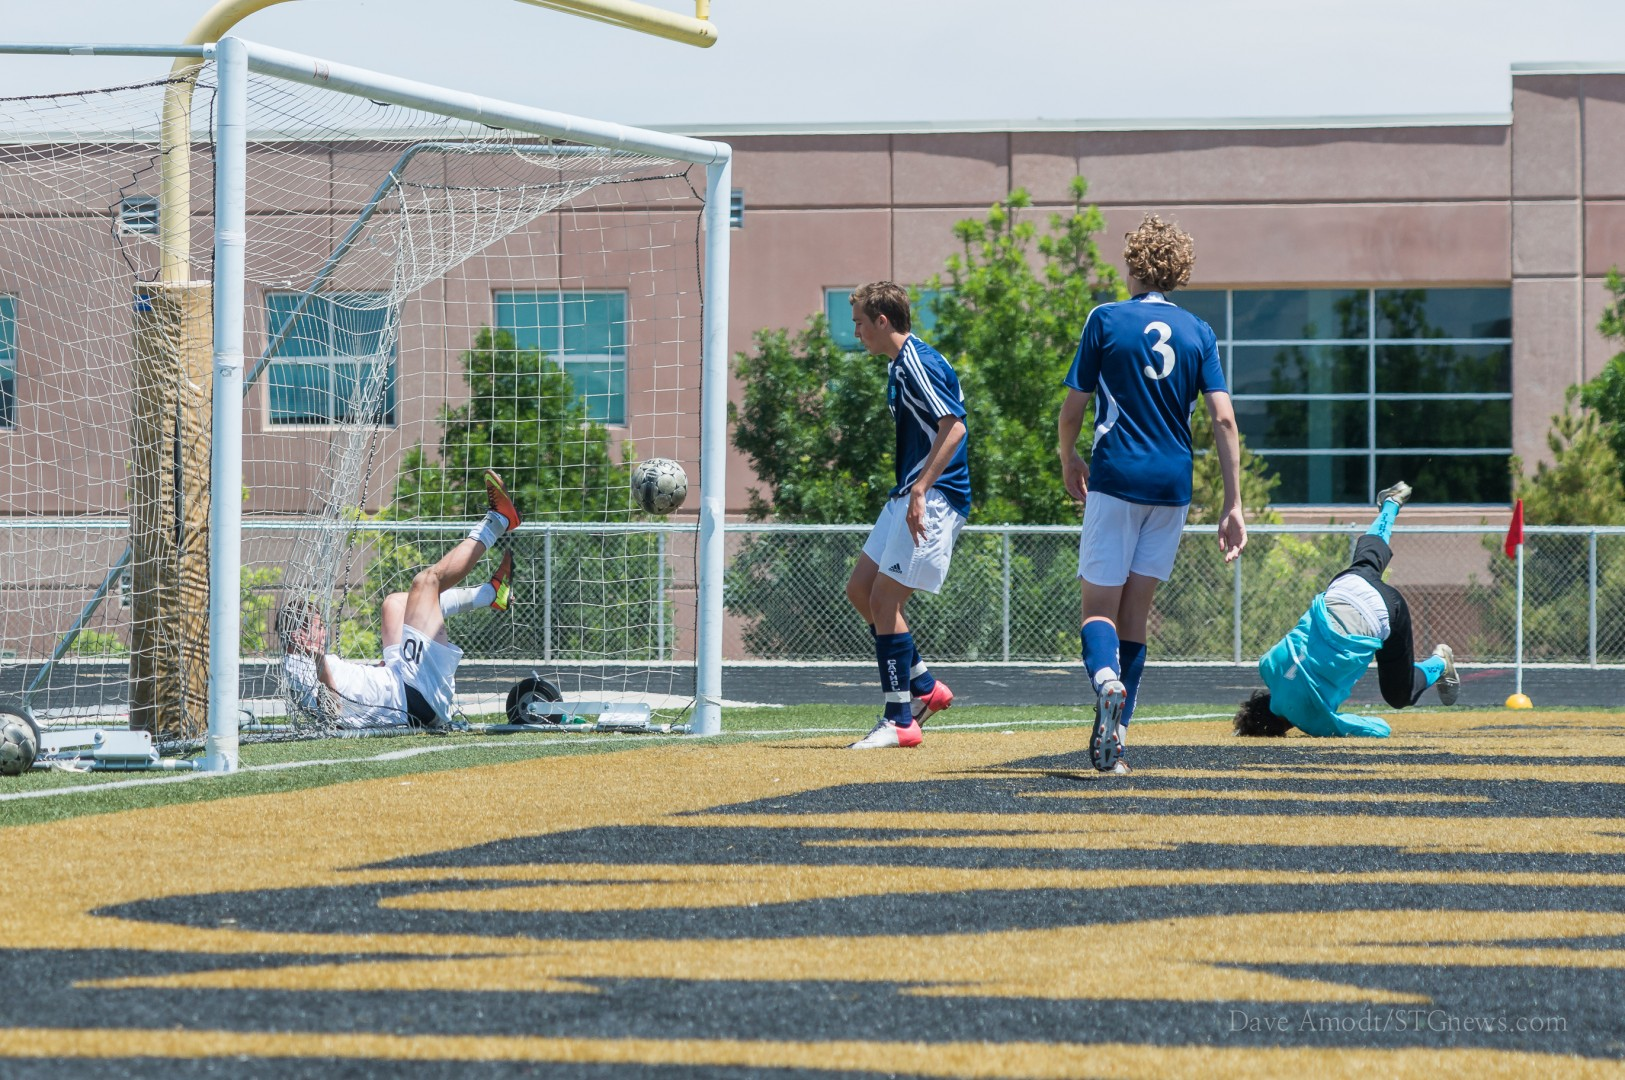 DH's Brock Johnson ends up in the net after scoring a goal Saturday, Juan Diego at Desert Hills, St. George, Utah, May 4, 2013   Photo by Dave Amodt, St. George News